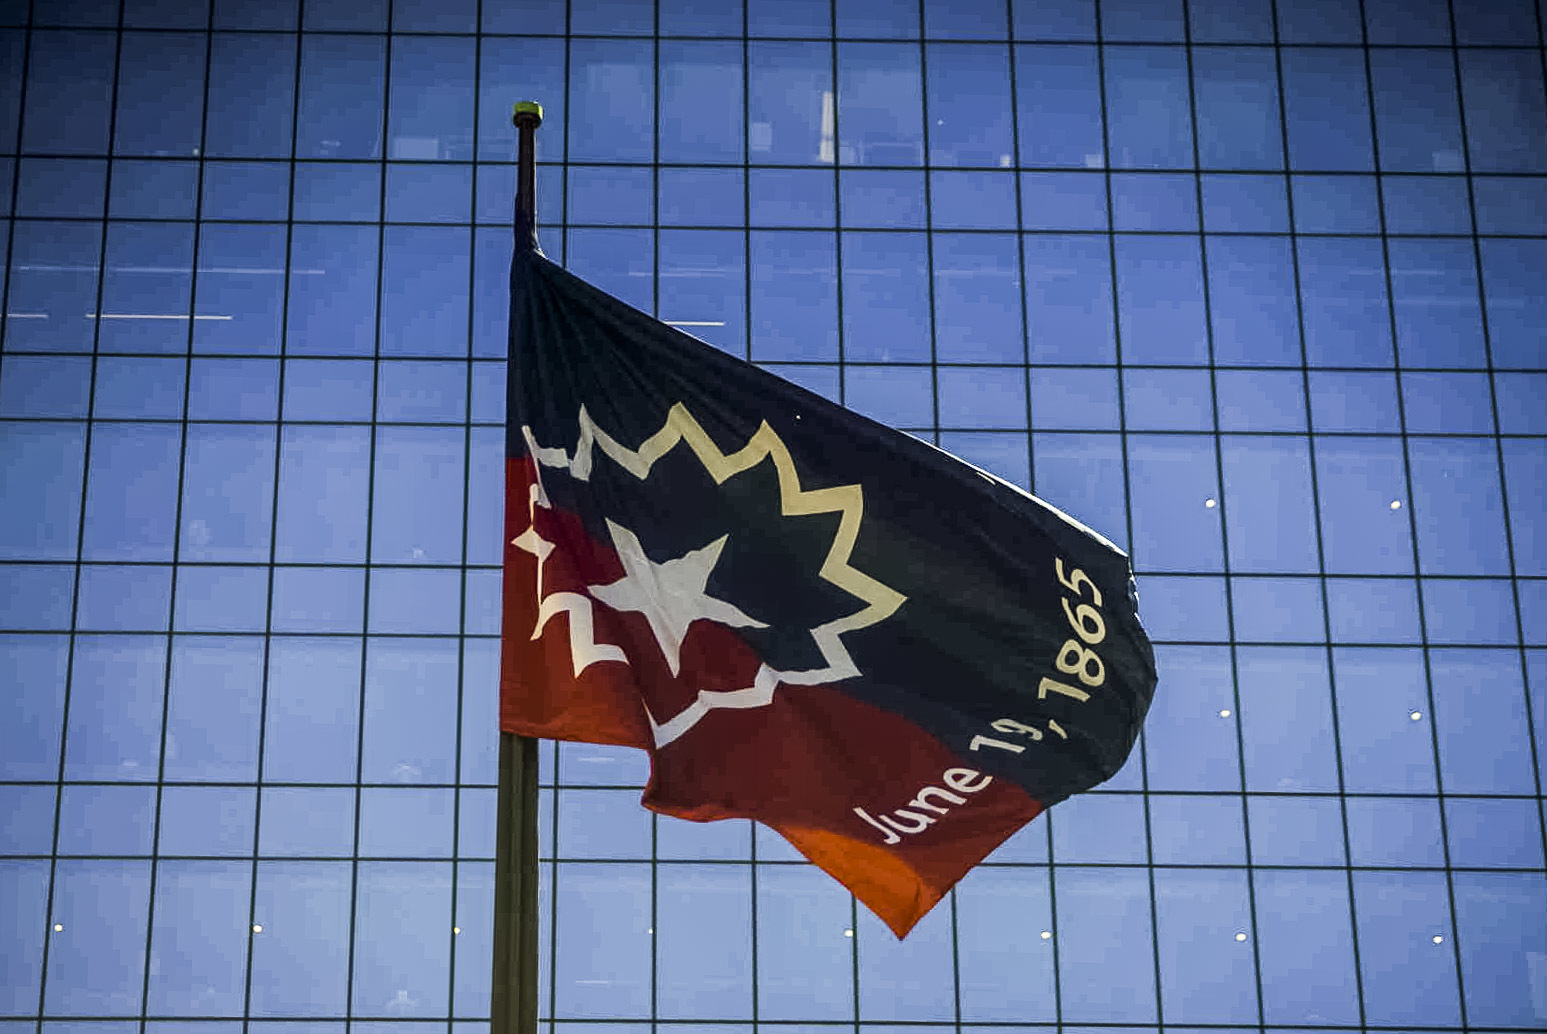 A Juneteenth flag was raised at Daley Center Plaza Monday, June 14, 2021.